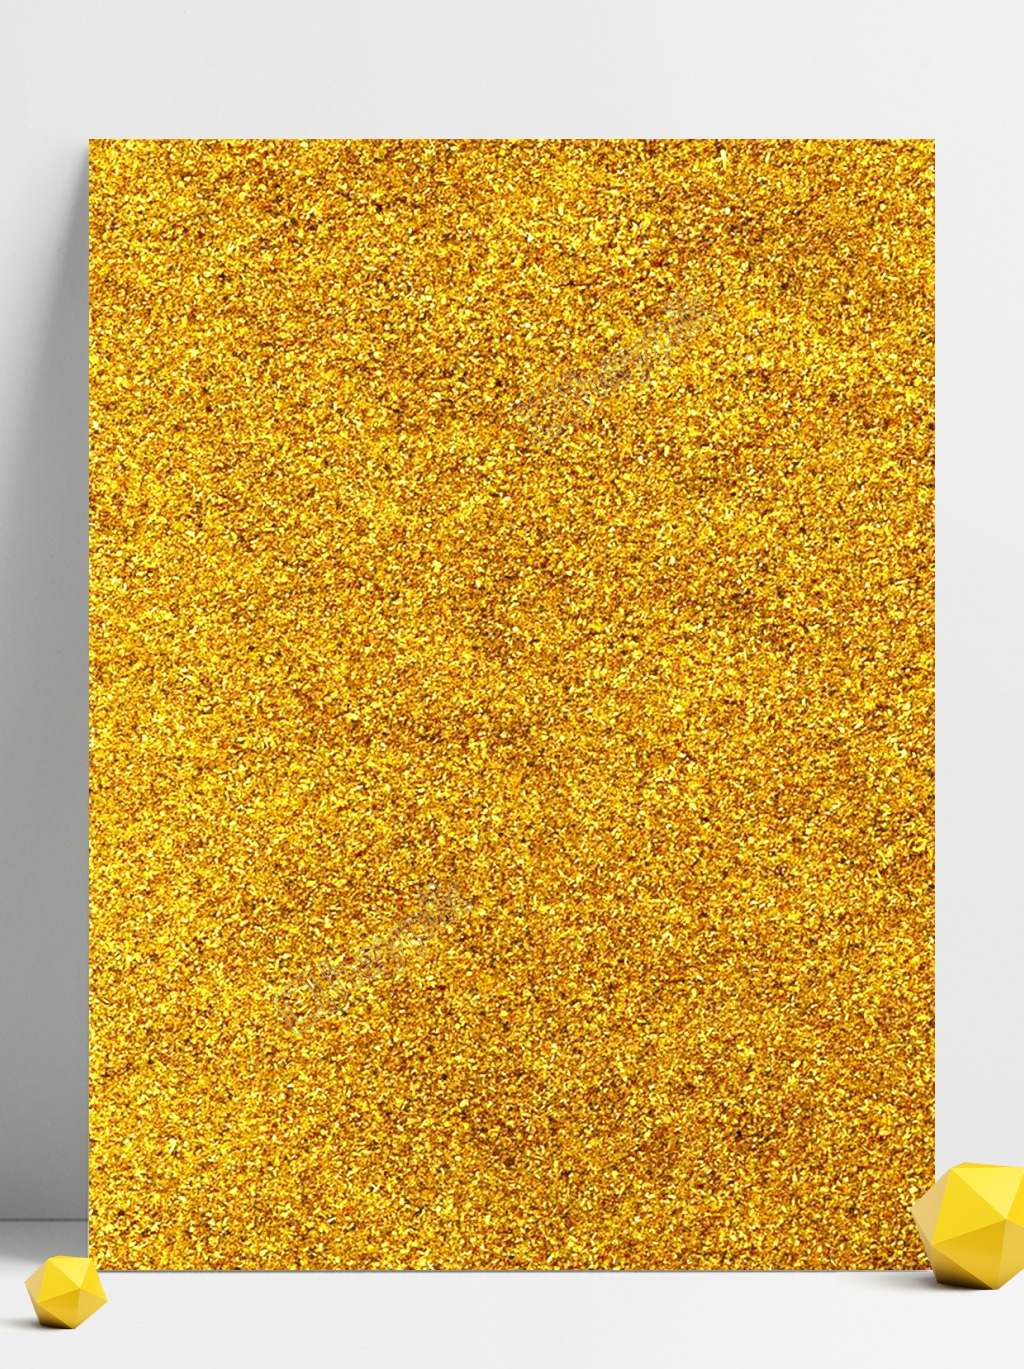 Gold Texture Png - Textured texture gold vector background - PNG and Background Image ...